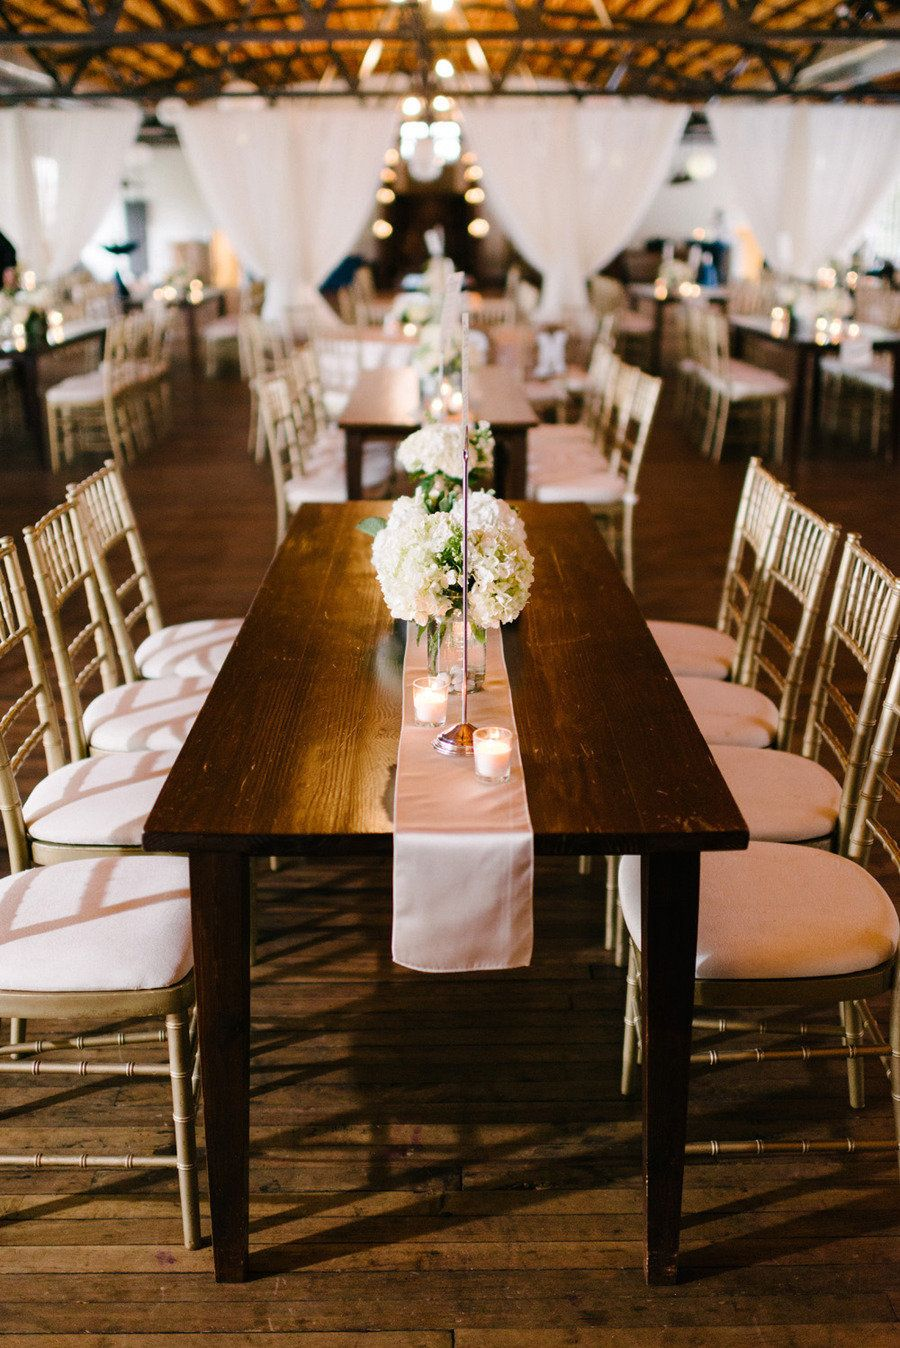 Atlanta Wedding From Artworks Cinema Rustic White Photography